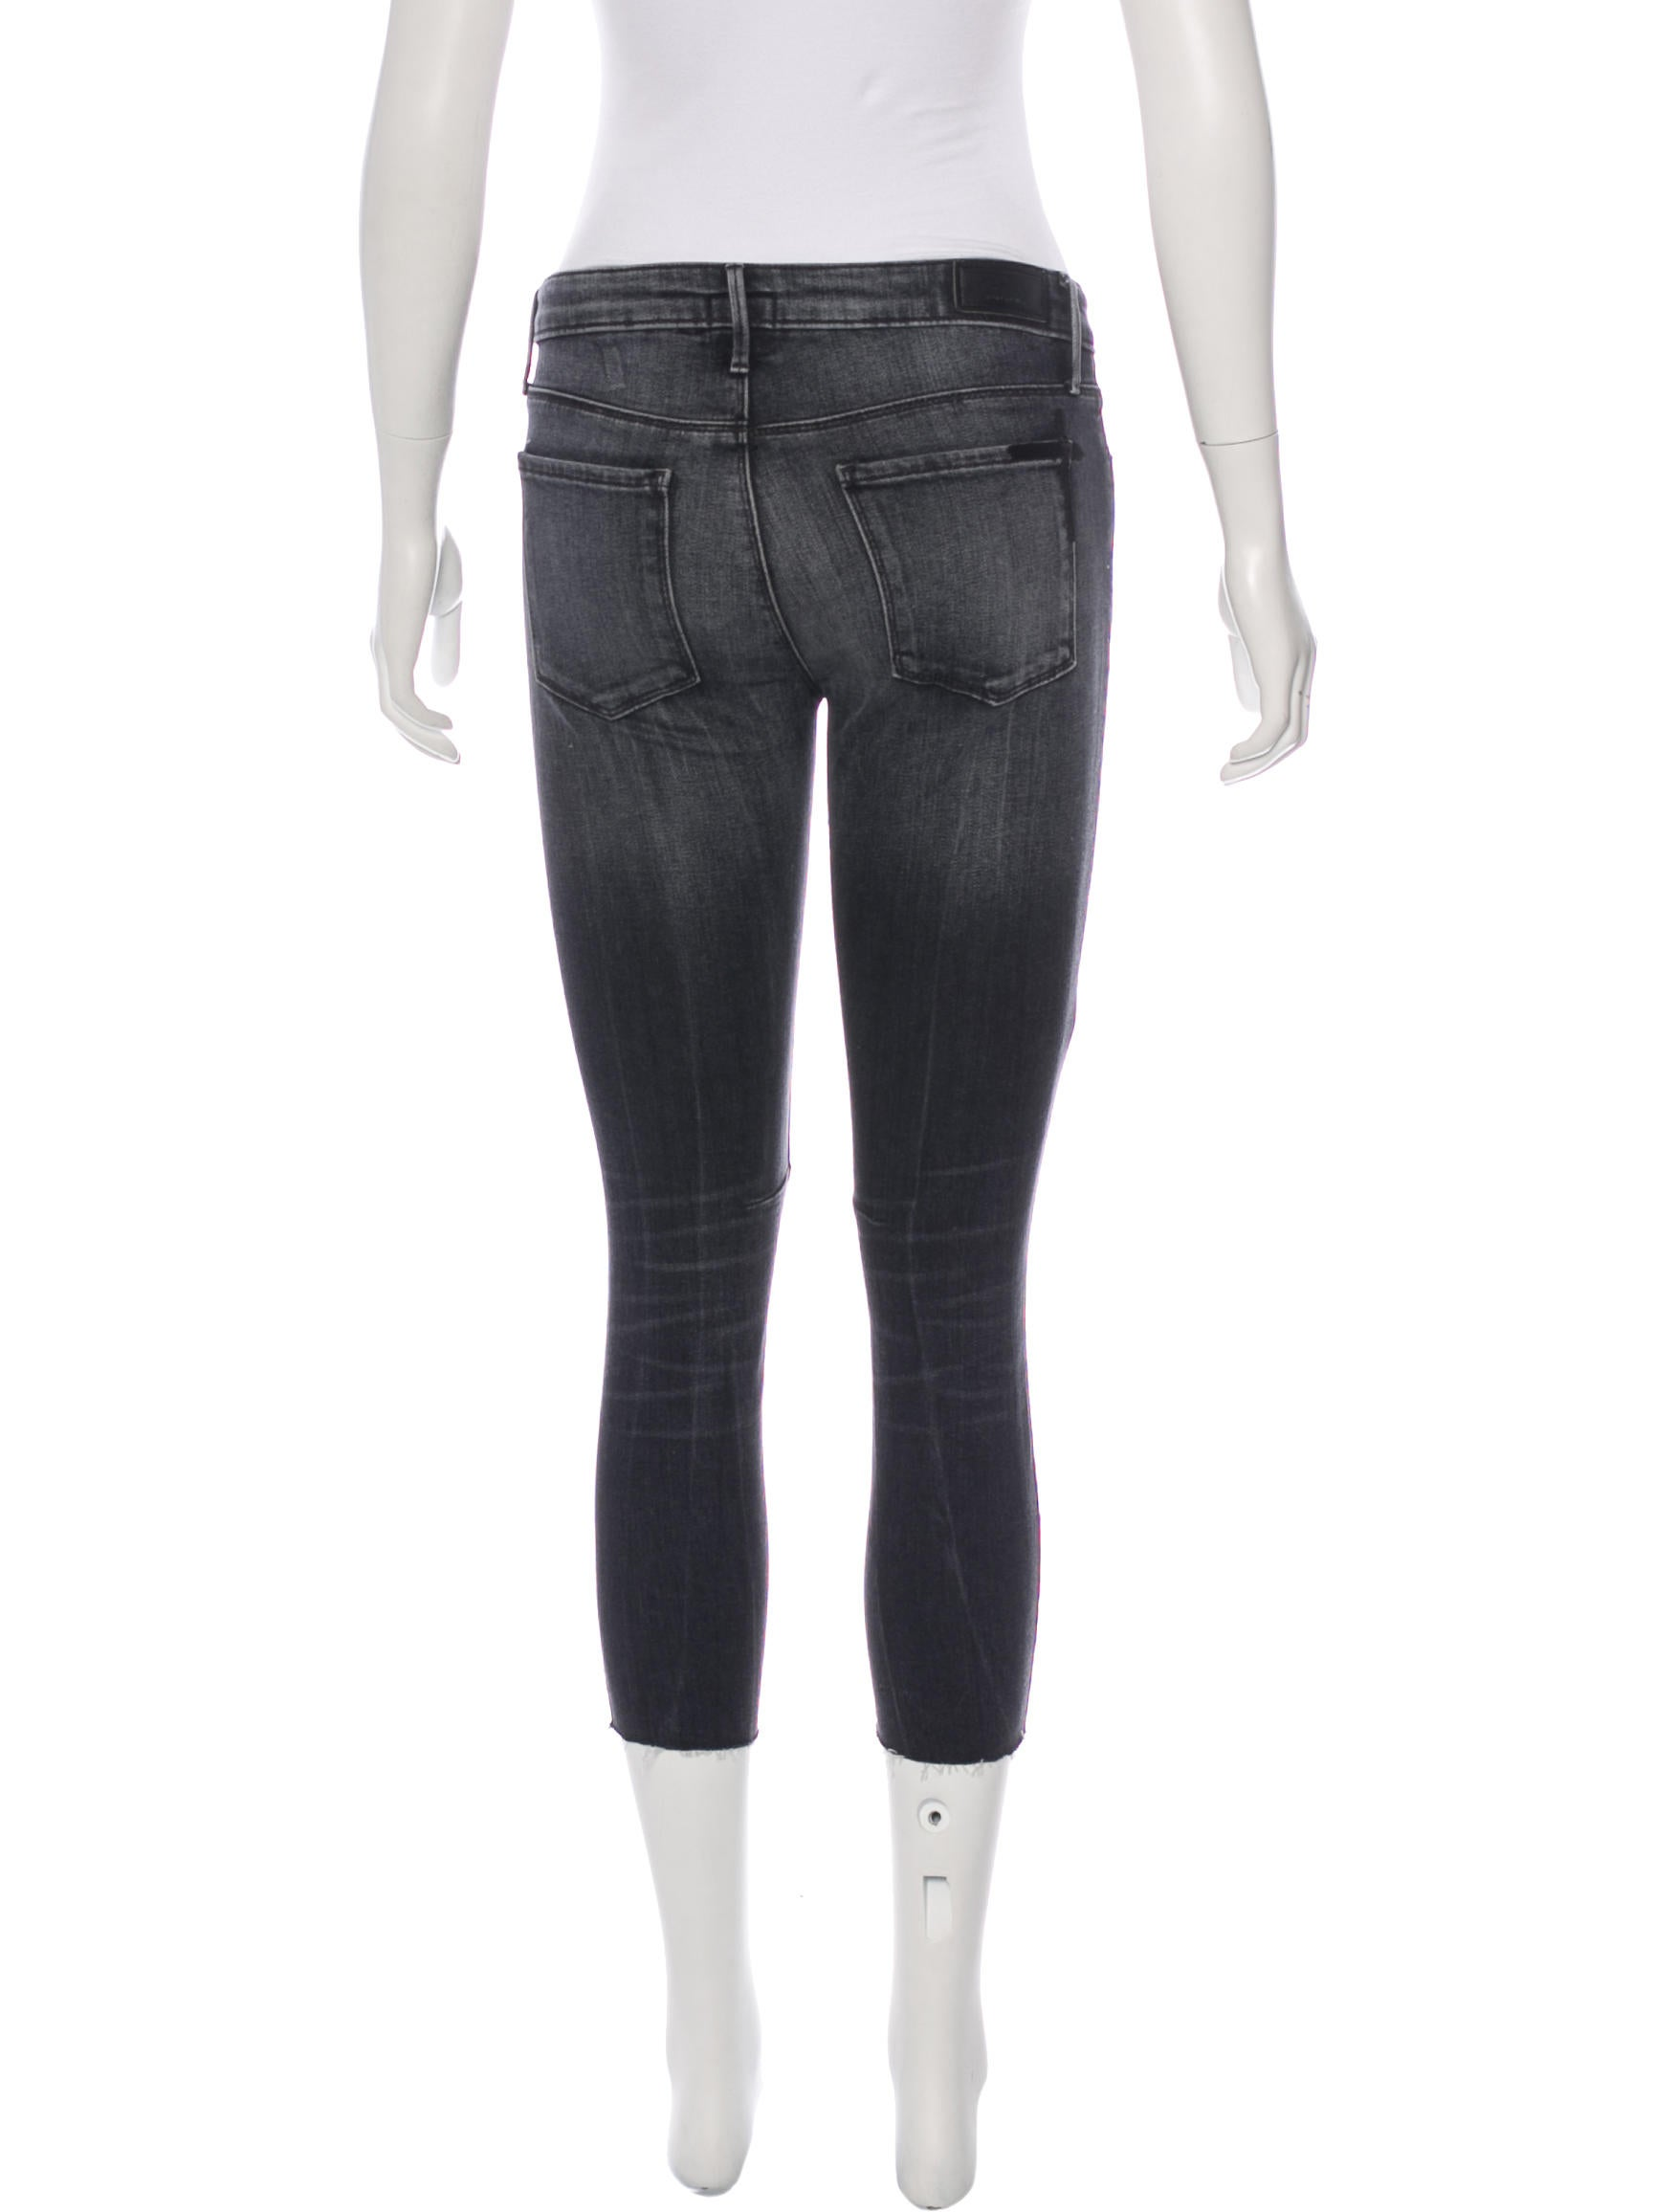 The Nora Jeans are your ultimate high waisted mom jeans. With a tapered leg that creates a relaxed carrot-fit, this 5-pocket jean is a modern-day call back to the 90s.